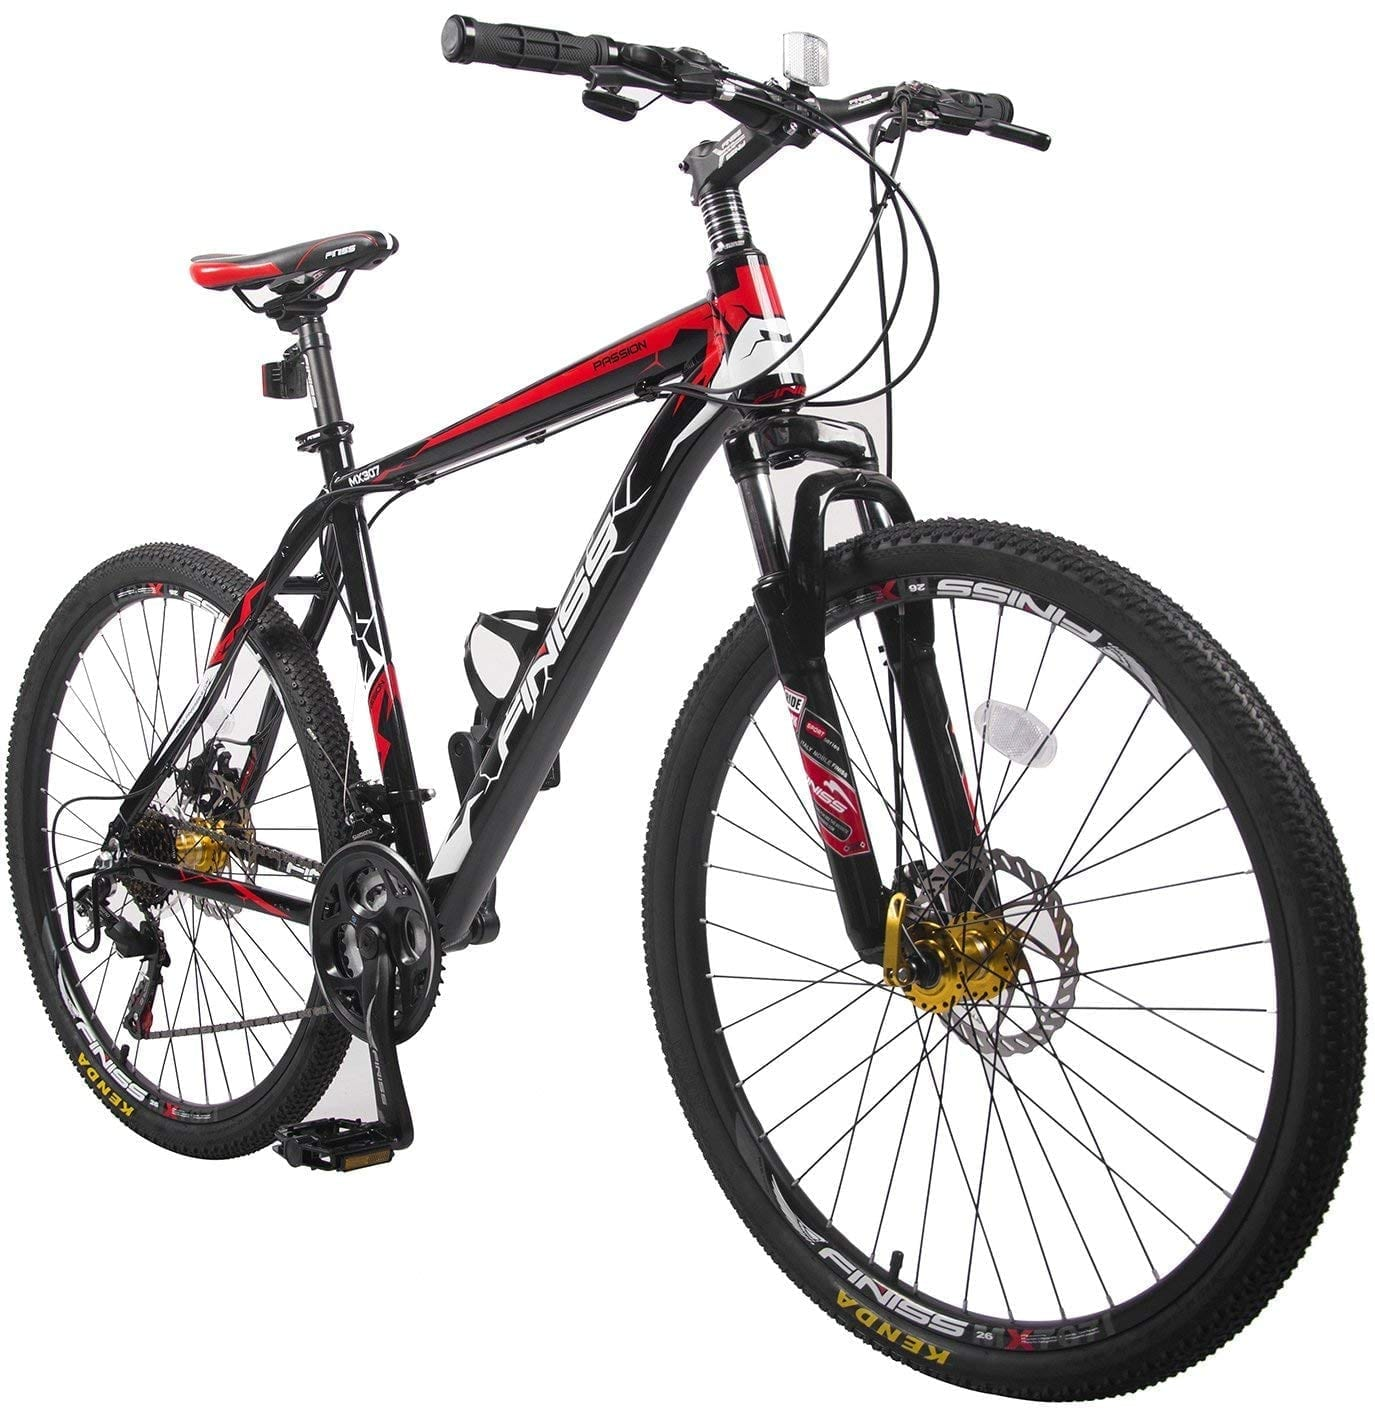 Merax Finiss 21 Speed Mountain Bike